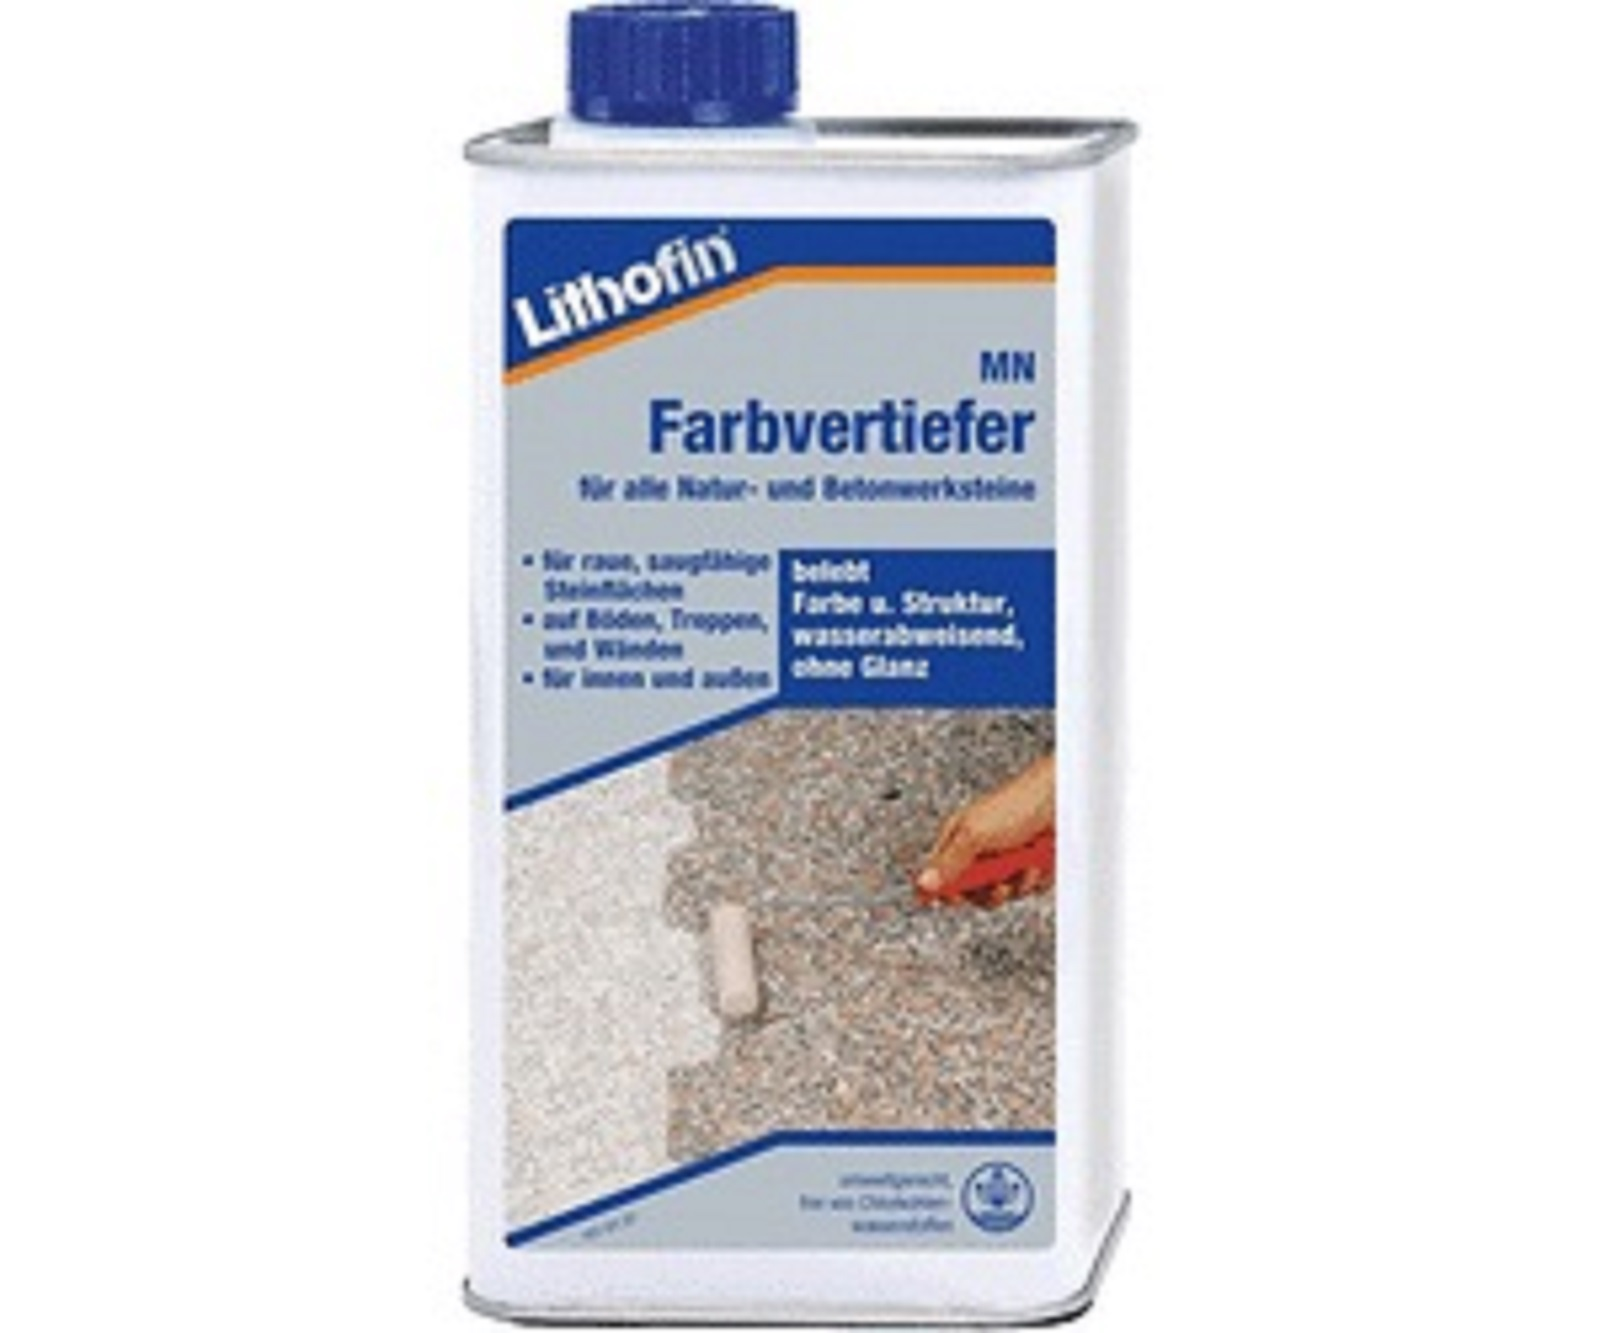 Lithofin MN Farbvertiefer